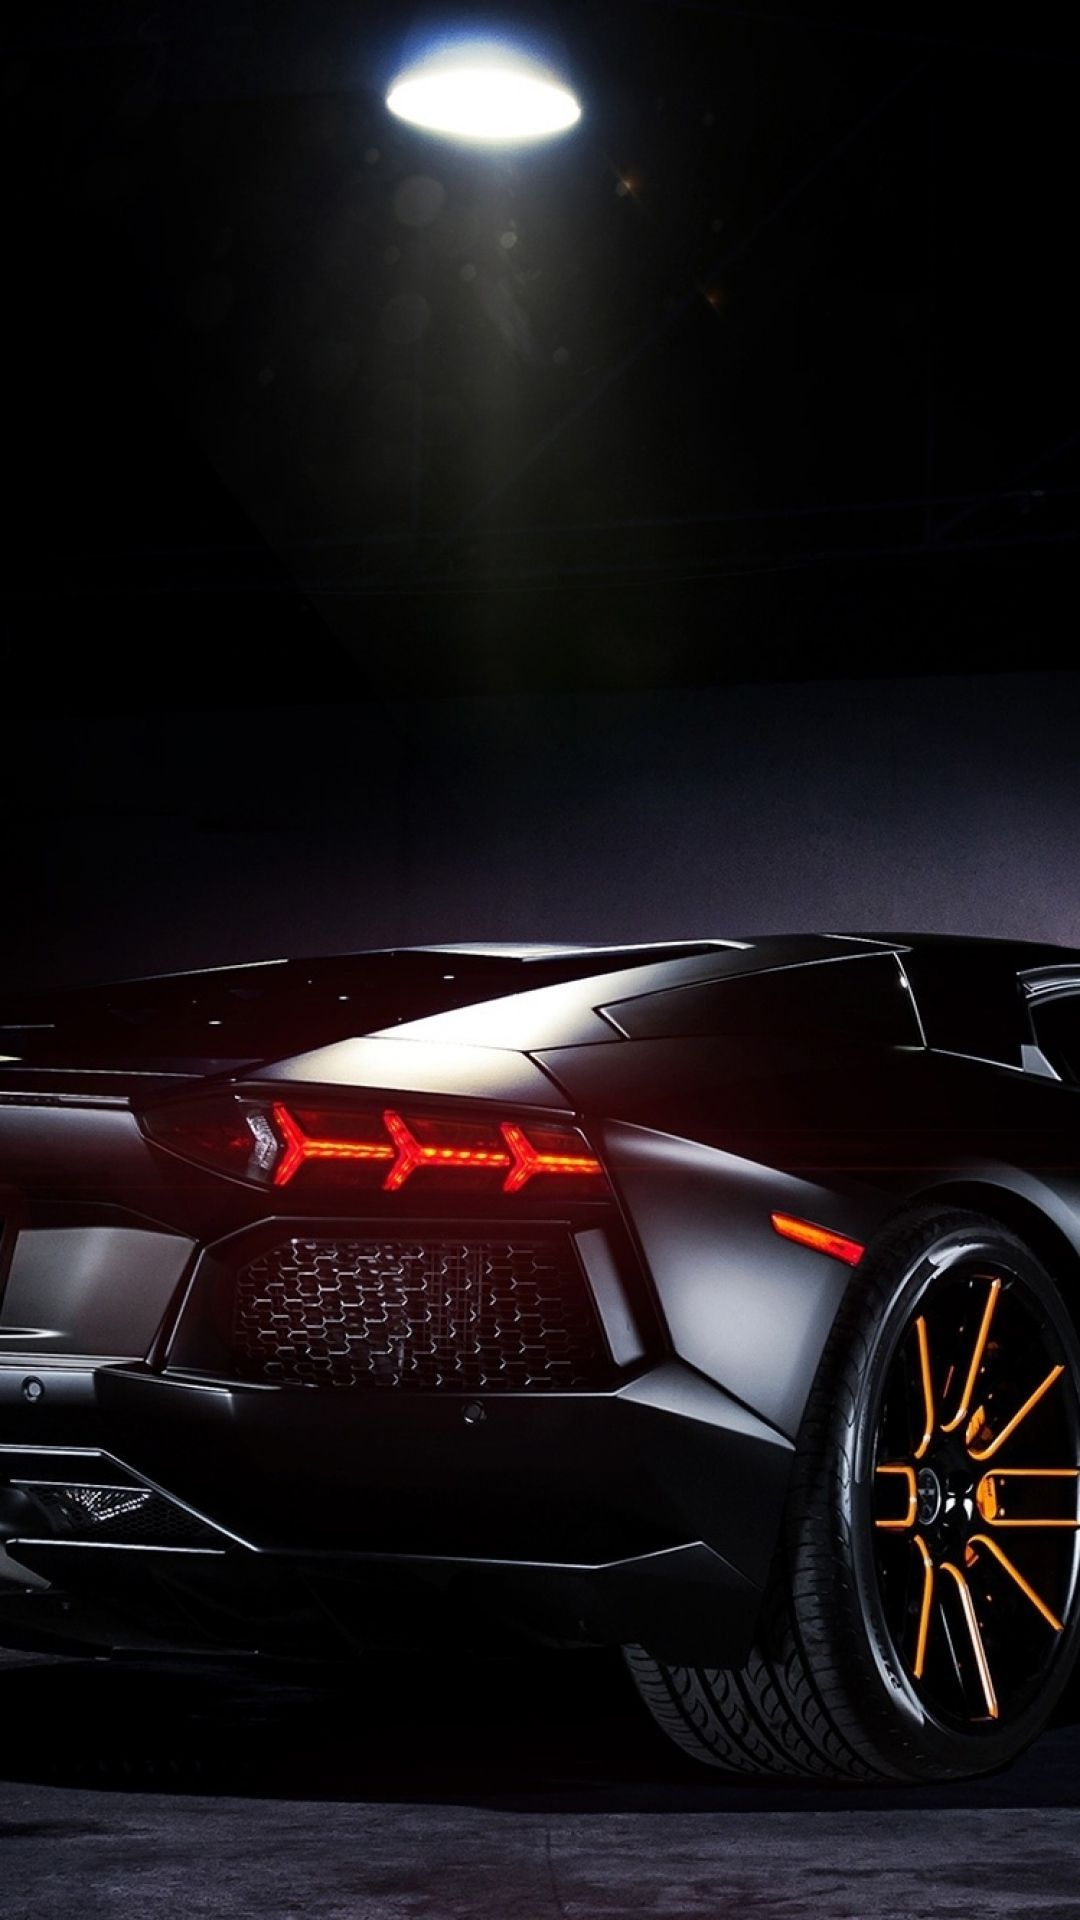 If you own a black car you know that waxing a black car is a must to protect the finish. Wallpaper Iphone Black Dark Lamborghini